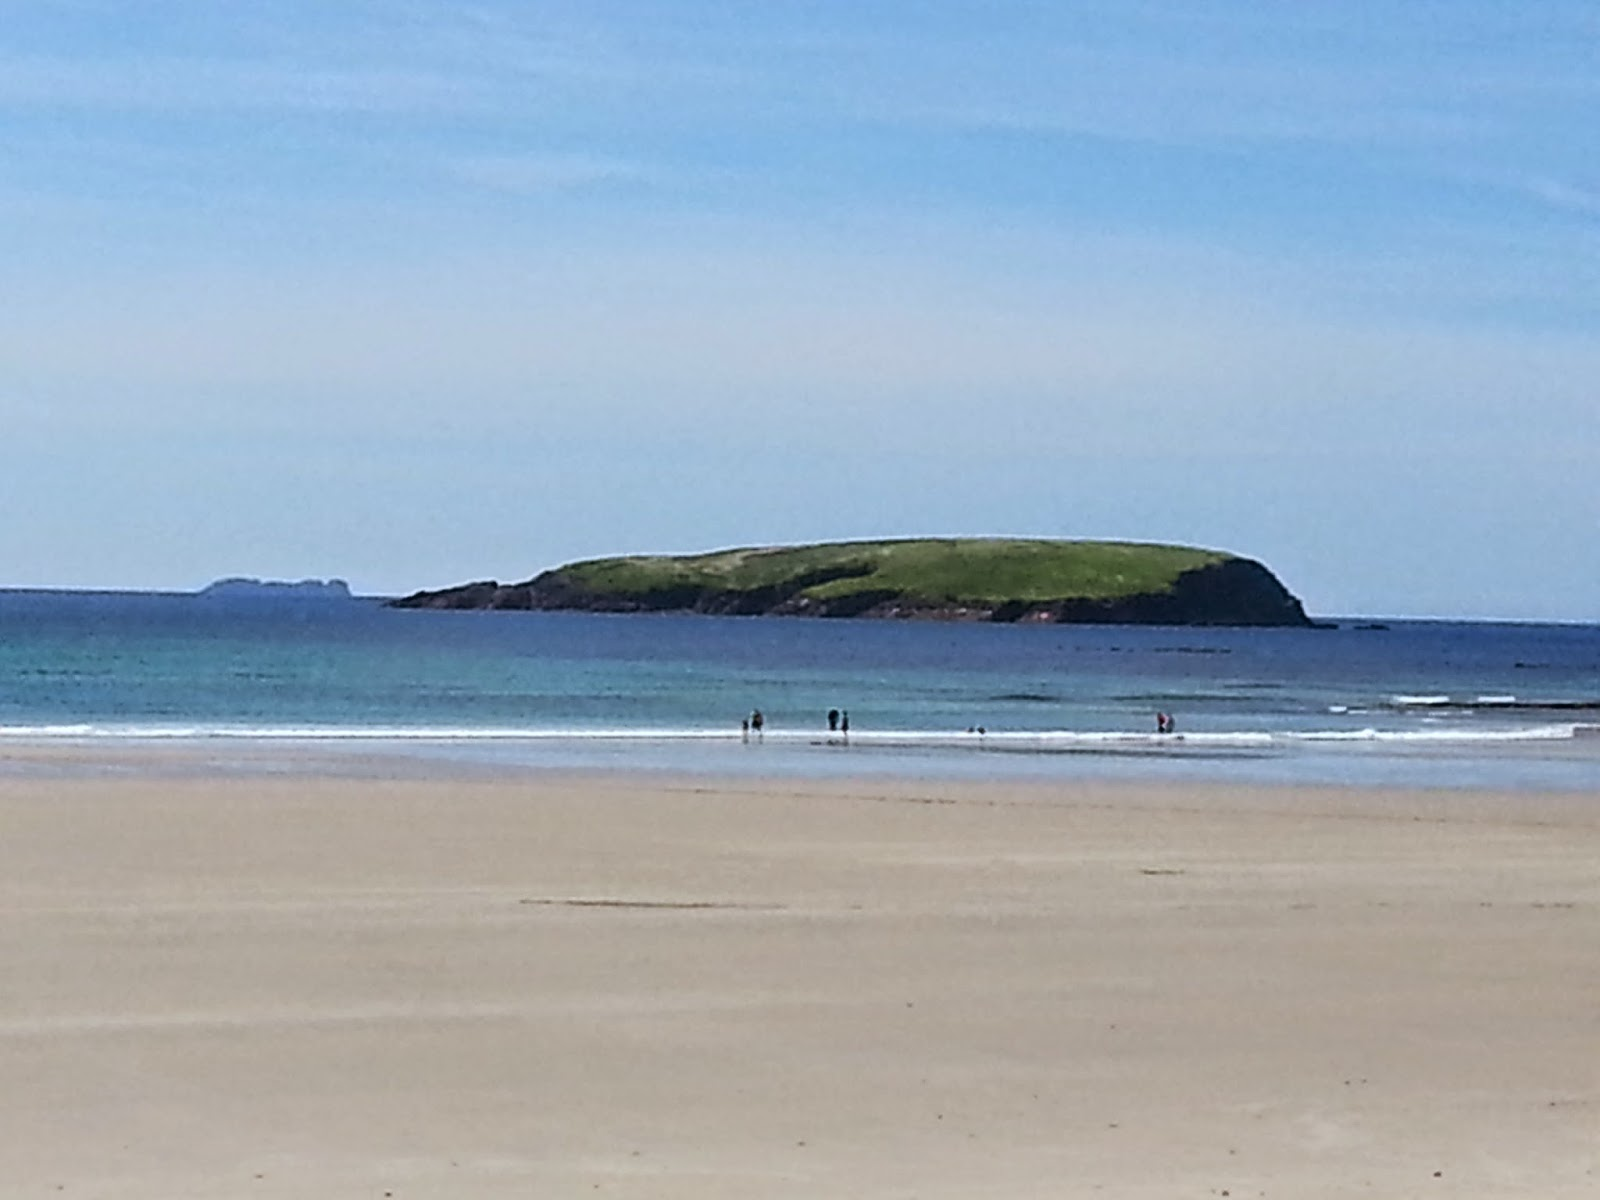 Keel beach in the foreground, Inisgalloon in the background, set against clear blue sky